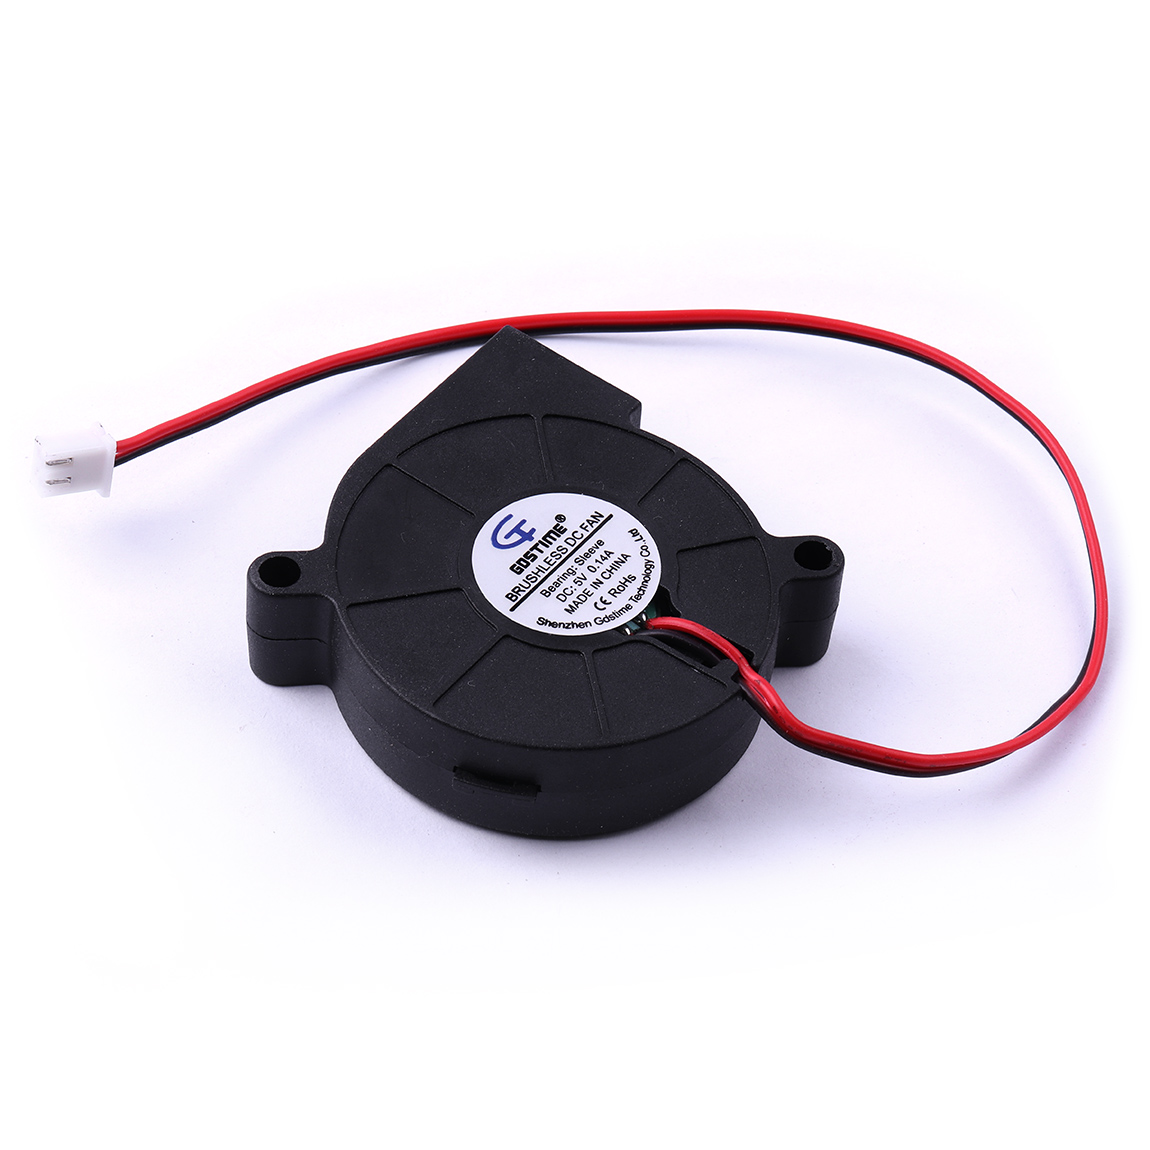 Hot Sale 1pcs DC <font><b>5V</b></font> 0.14A 1.75W 4.59CFM 51x51x15mm Rotating speed 5000RPM DC Turbine Brushless Cooling Blower <font><b>Fan</b></font> <font><b>Motor</b></font> image